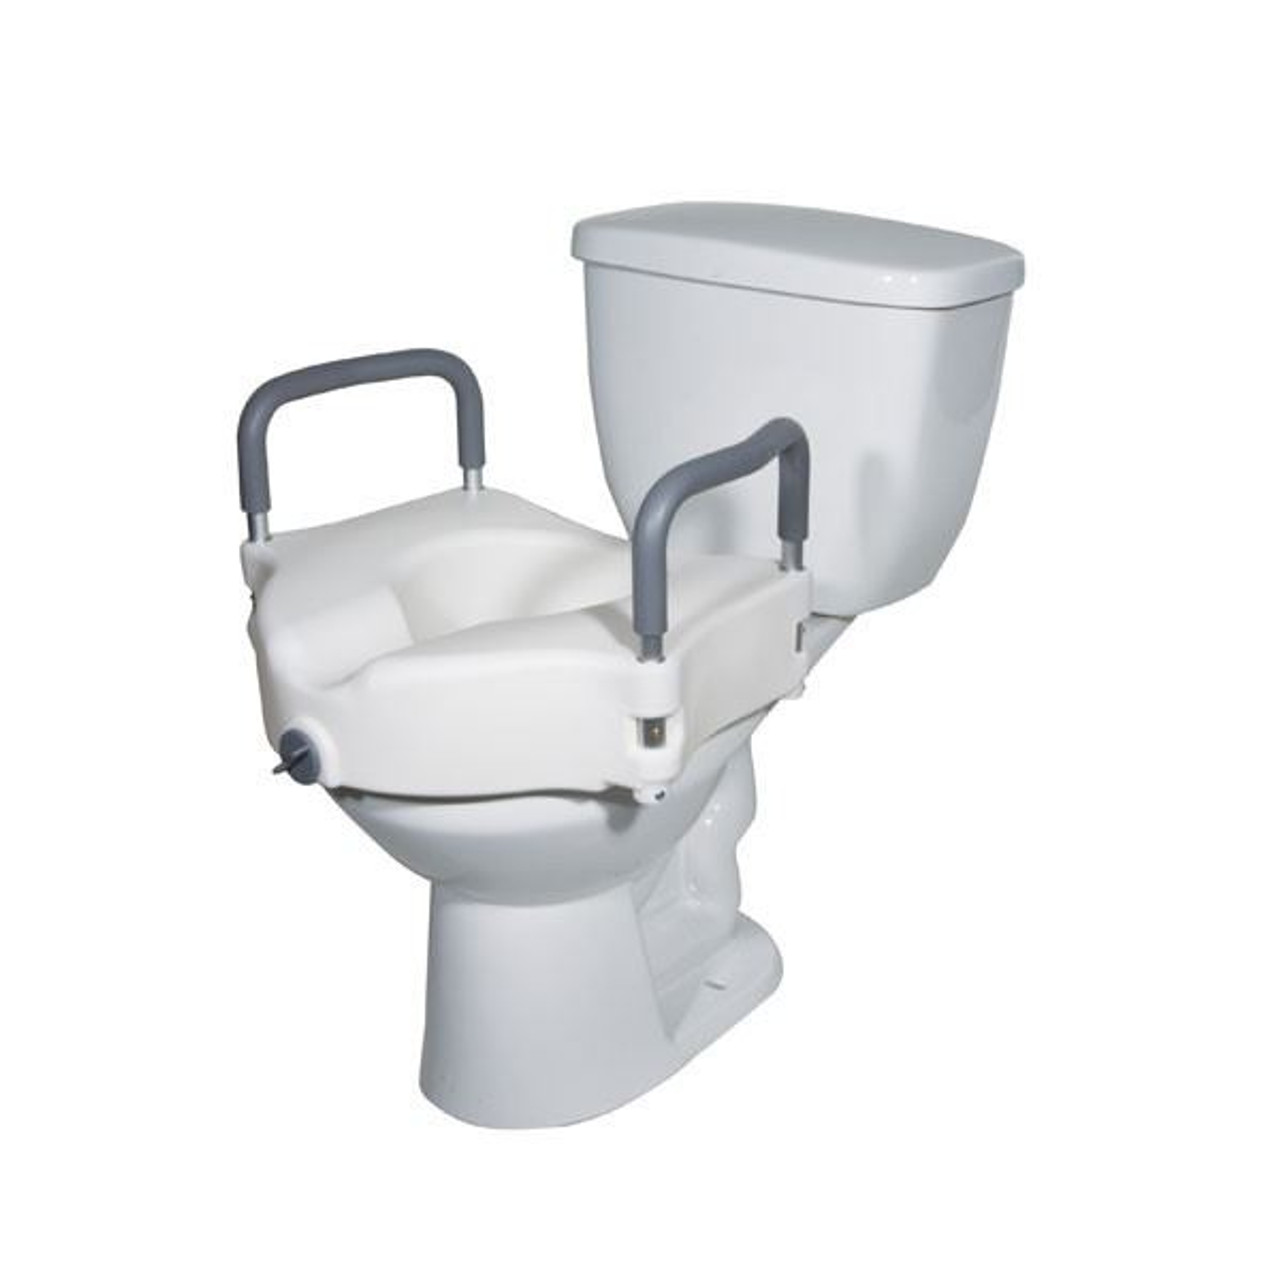 Toilet Seat Riser With Arms.Premium Seat Riser With Removable Arms